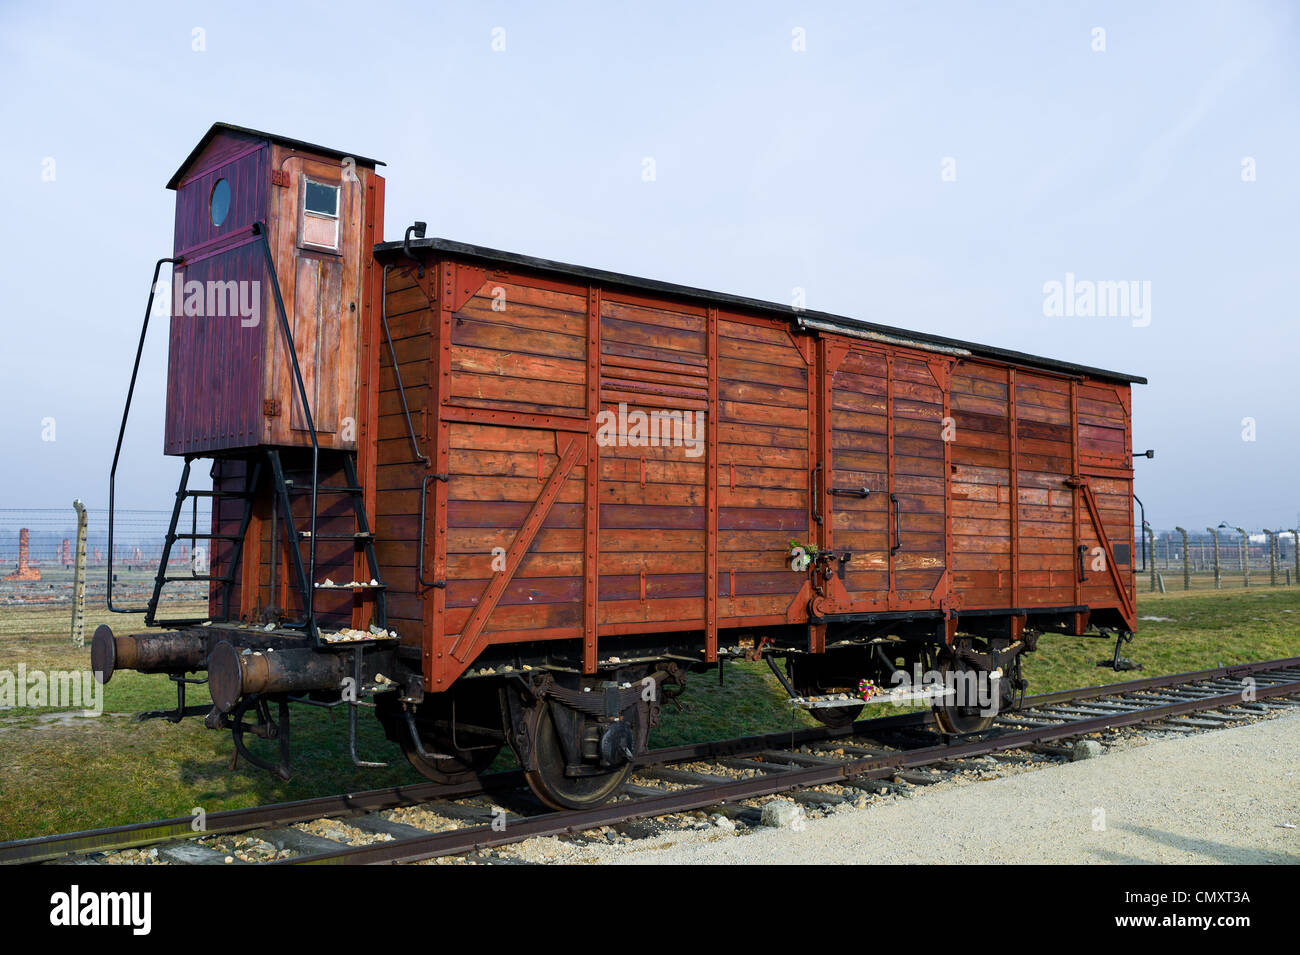 Prisoner transport carriage at Auschwitz II, Birkenau, Poland - Stock Image